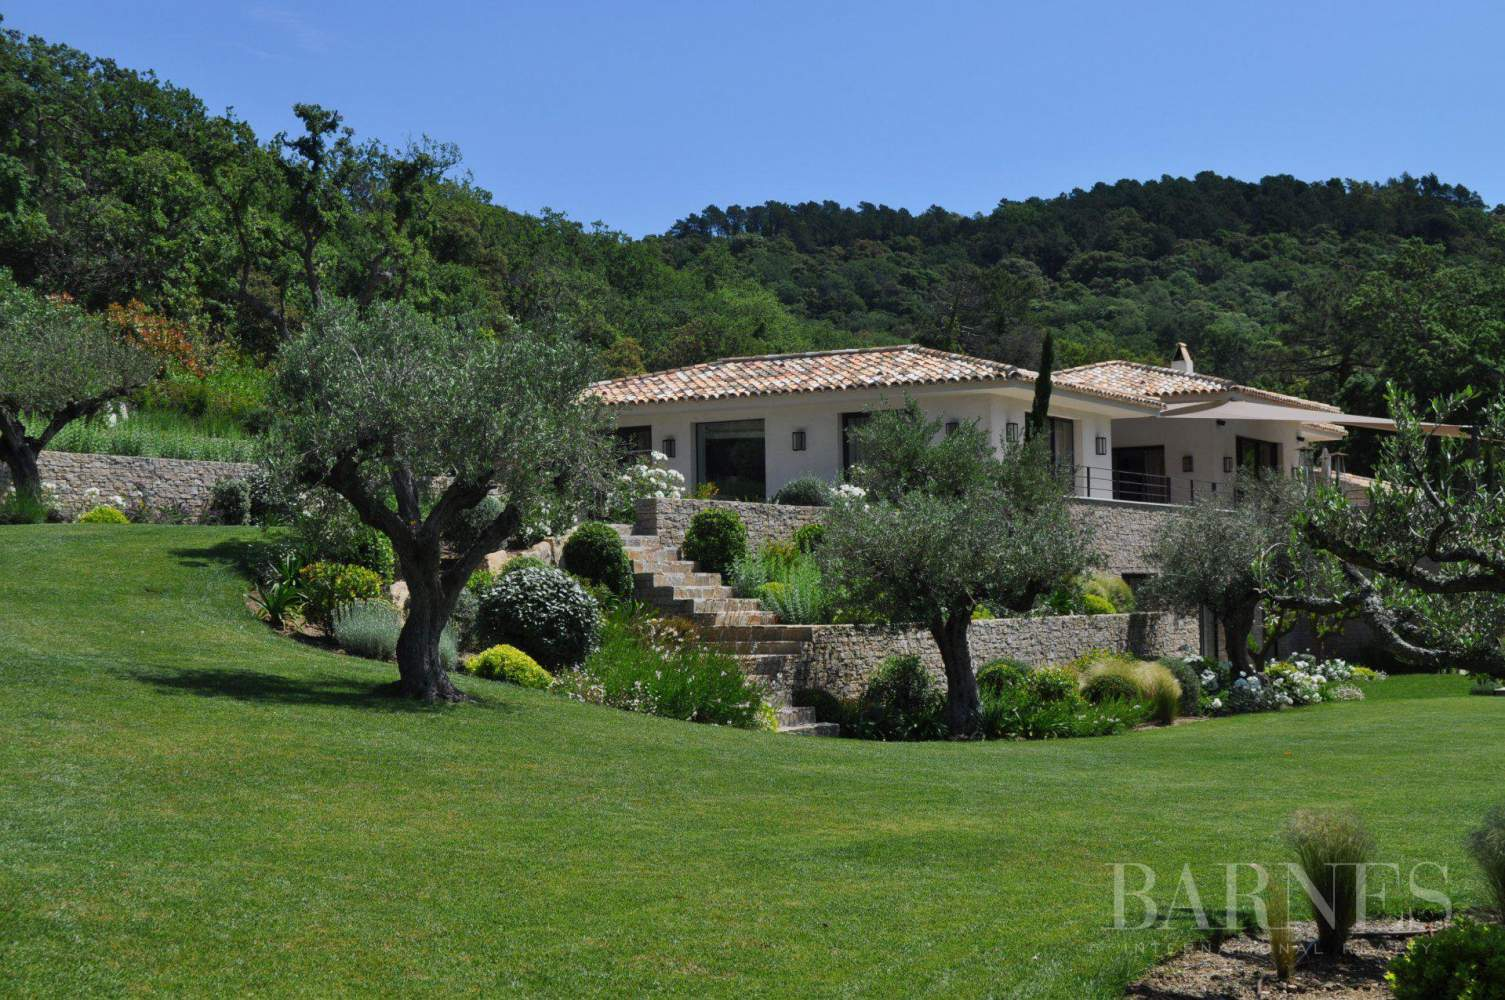 GASSIN - Villa 7 bedrooms - Infinity pool - Golf - Absolute calm and privacy picture 1